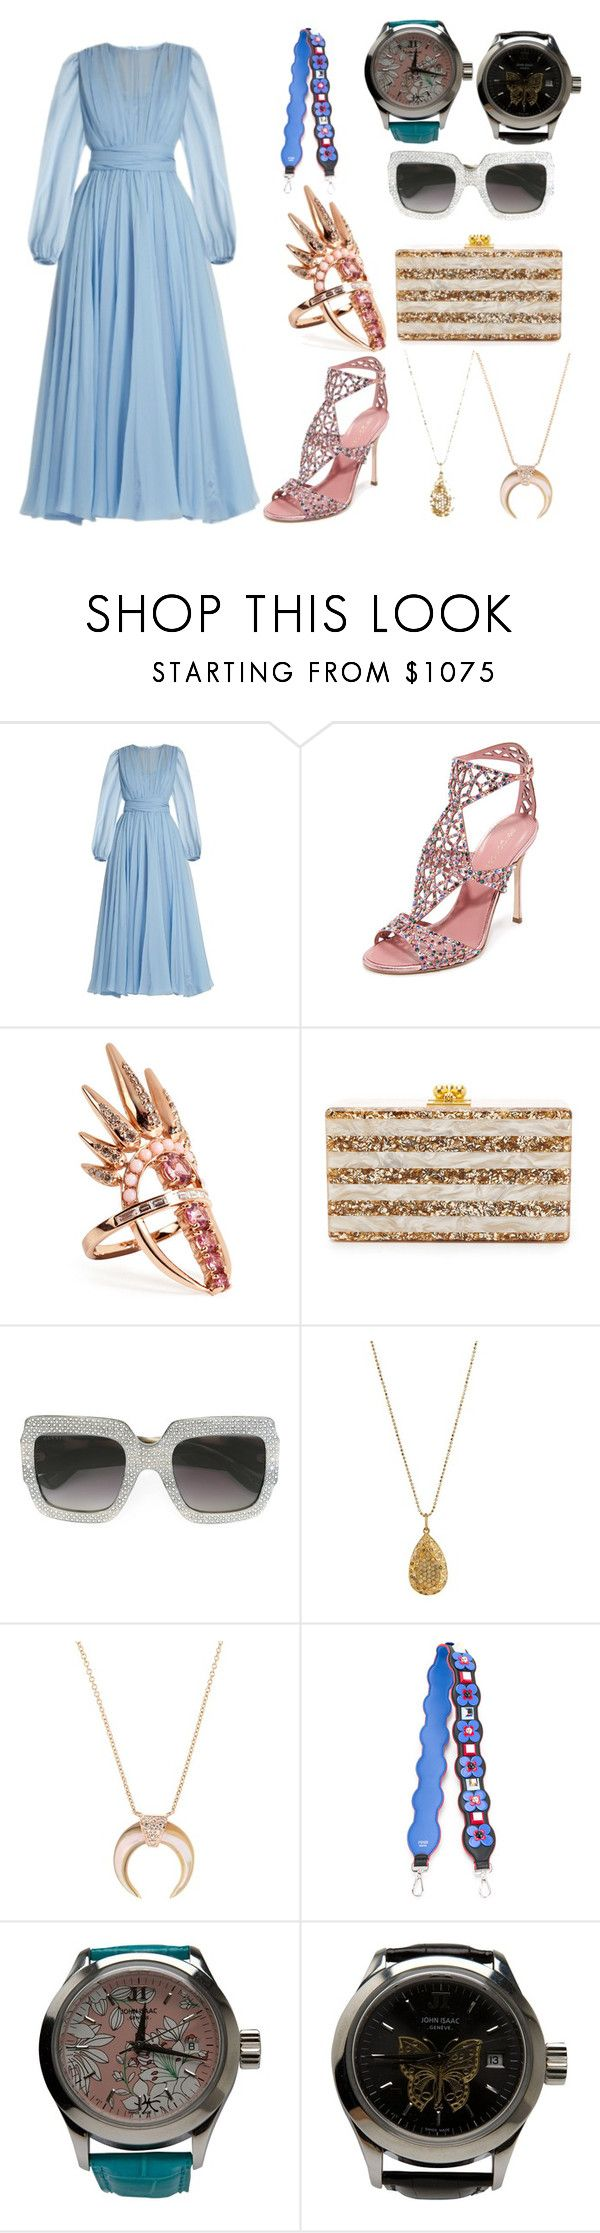 """Ultra fashion"" by gadinarmada-1 ❤ liked on Polyvore featuring Dolce&Gabbana, Sergio Rossi, Nikos Koulis, Edie Parker, Gucci, Carolina Bucci, Jacquie Aiche, Fendi and John Isaac"